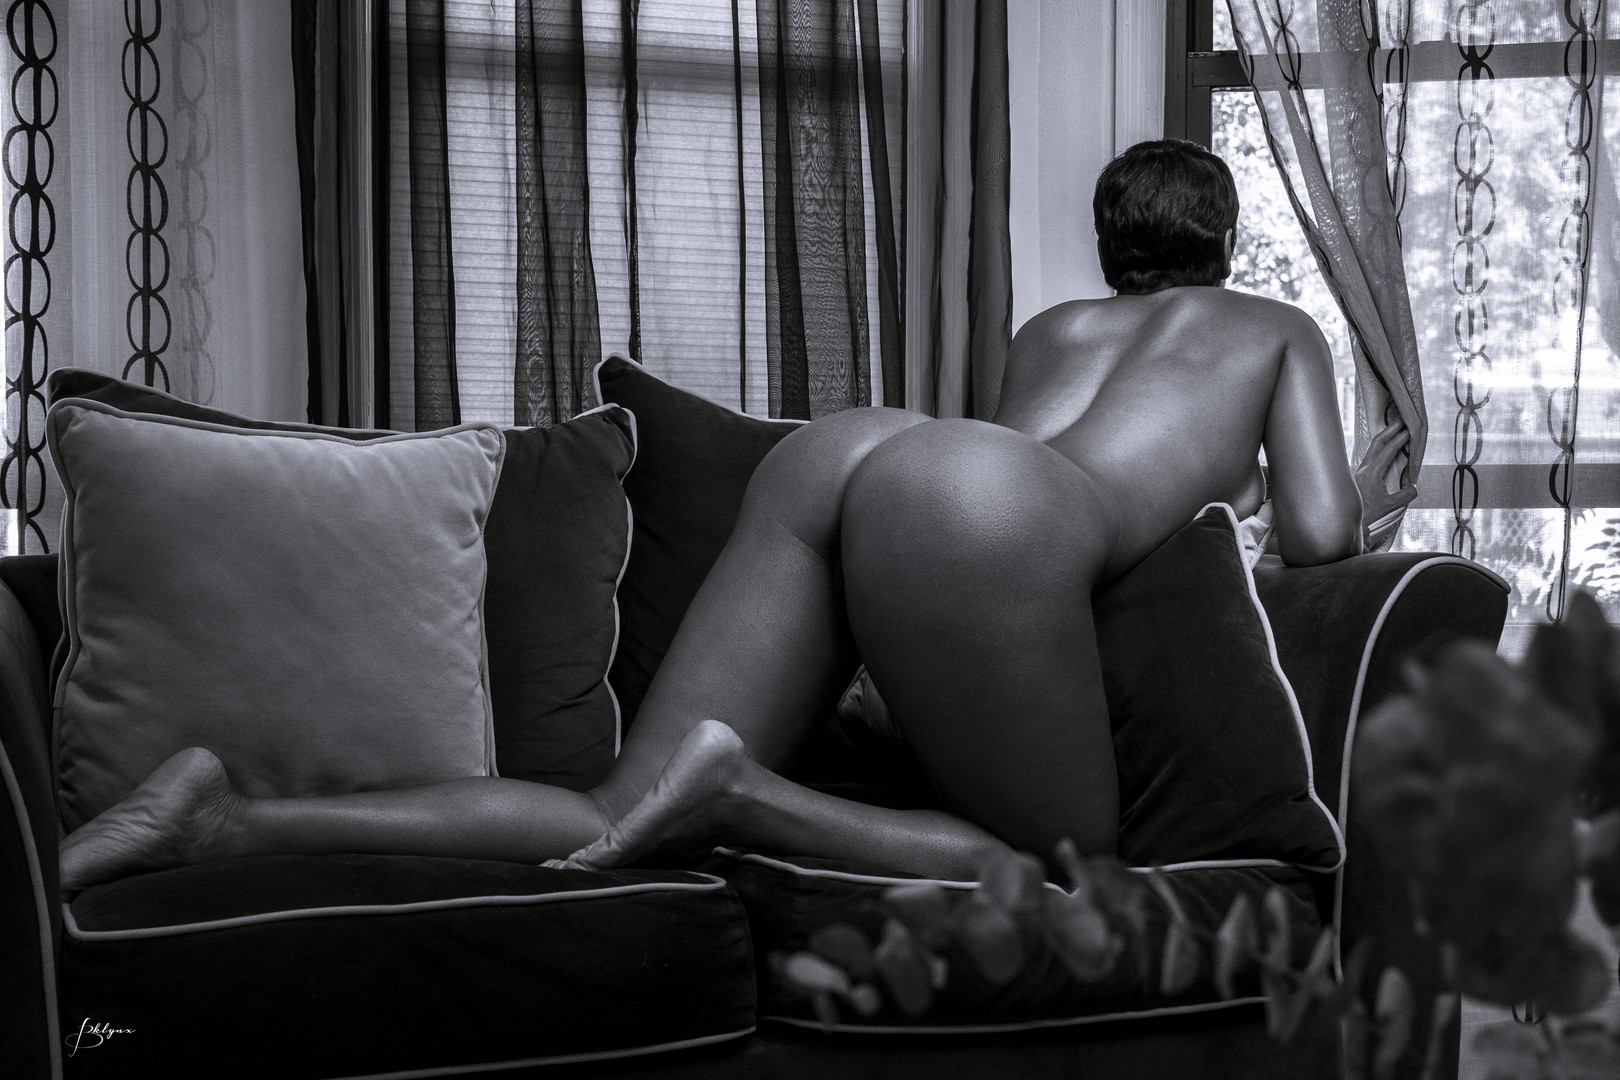 EV NUDE BW COUCH WINDOW